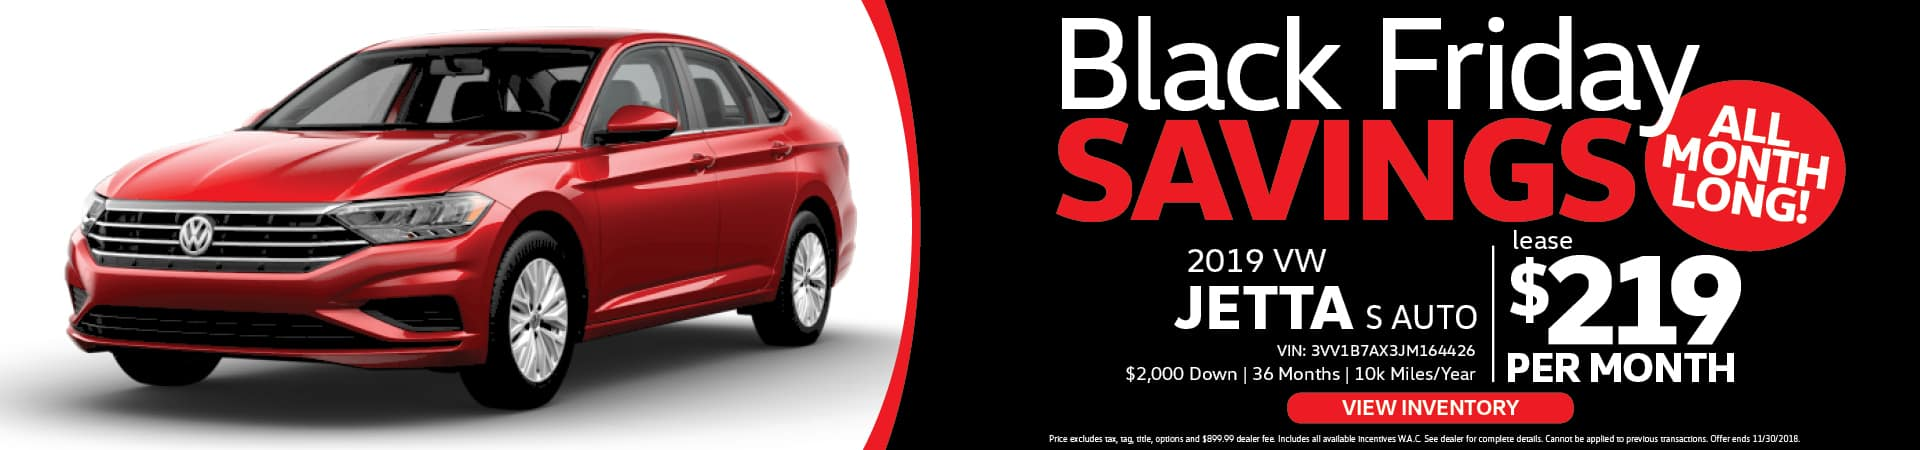 VW Jetta Black Friday Special